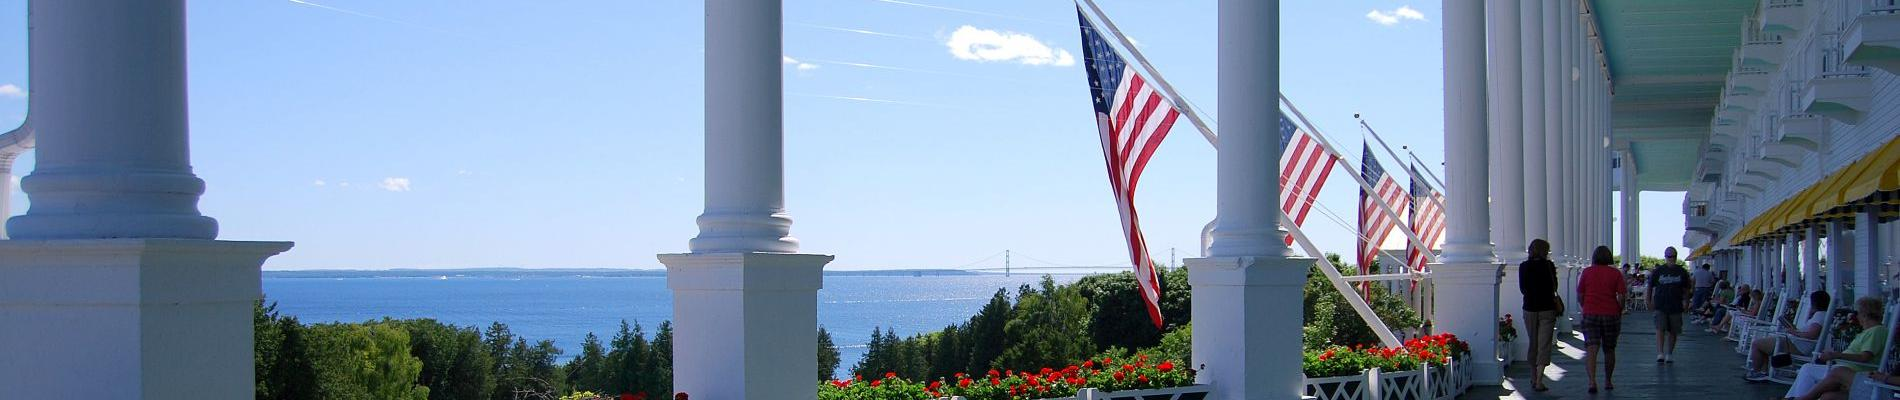 Grand Getaway- Mackinac Island's Grand Hotel